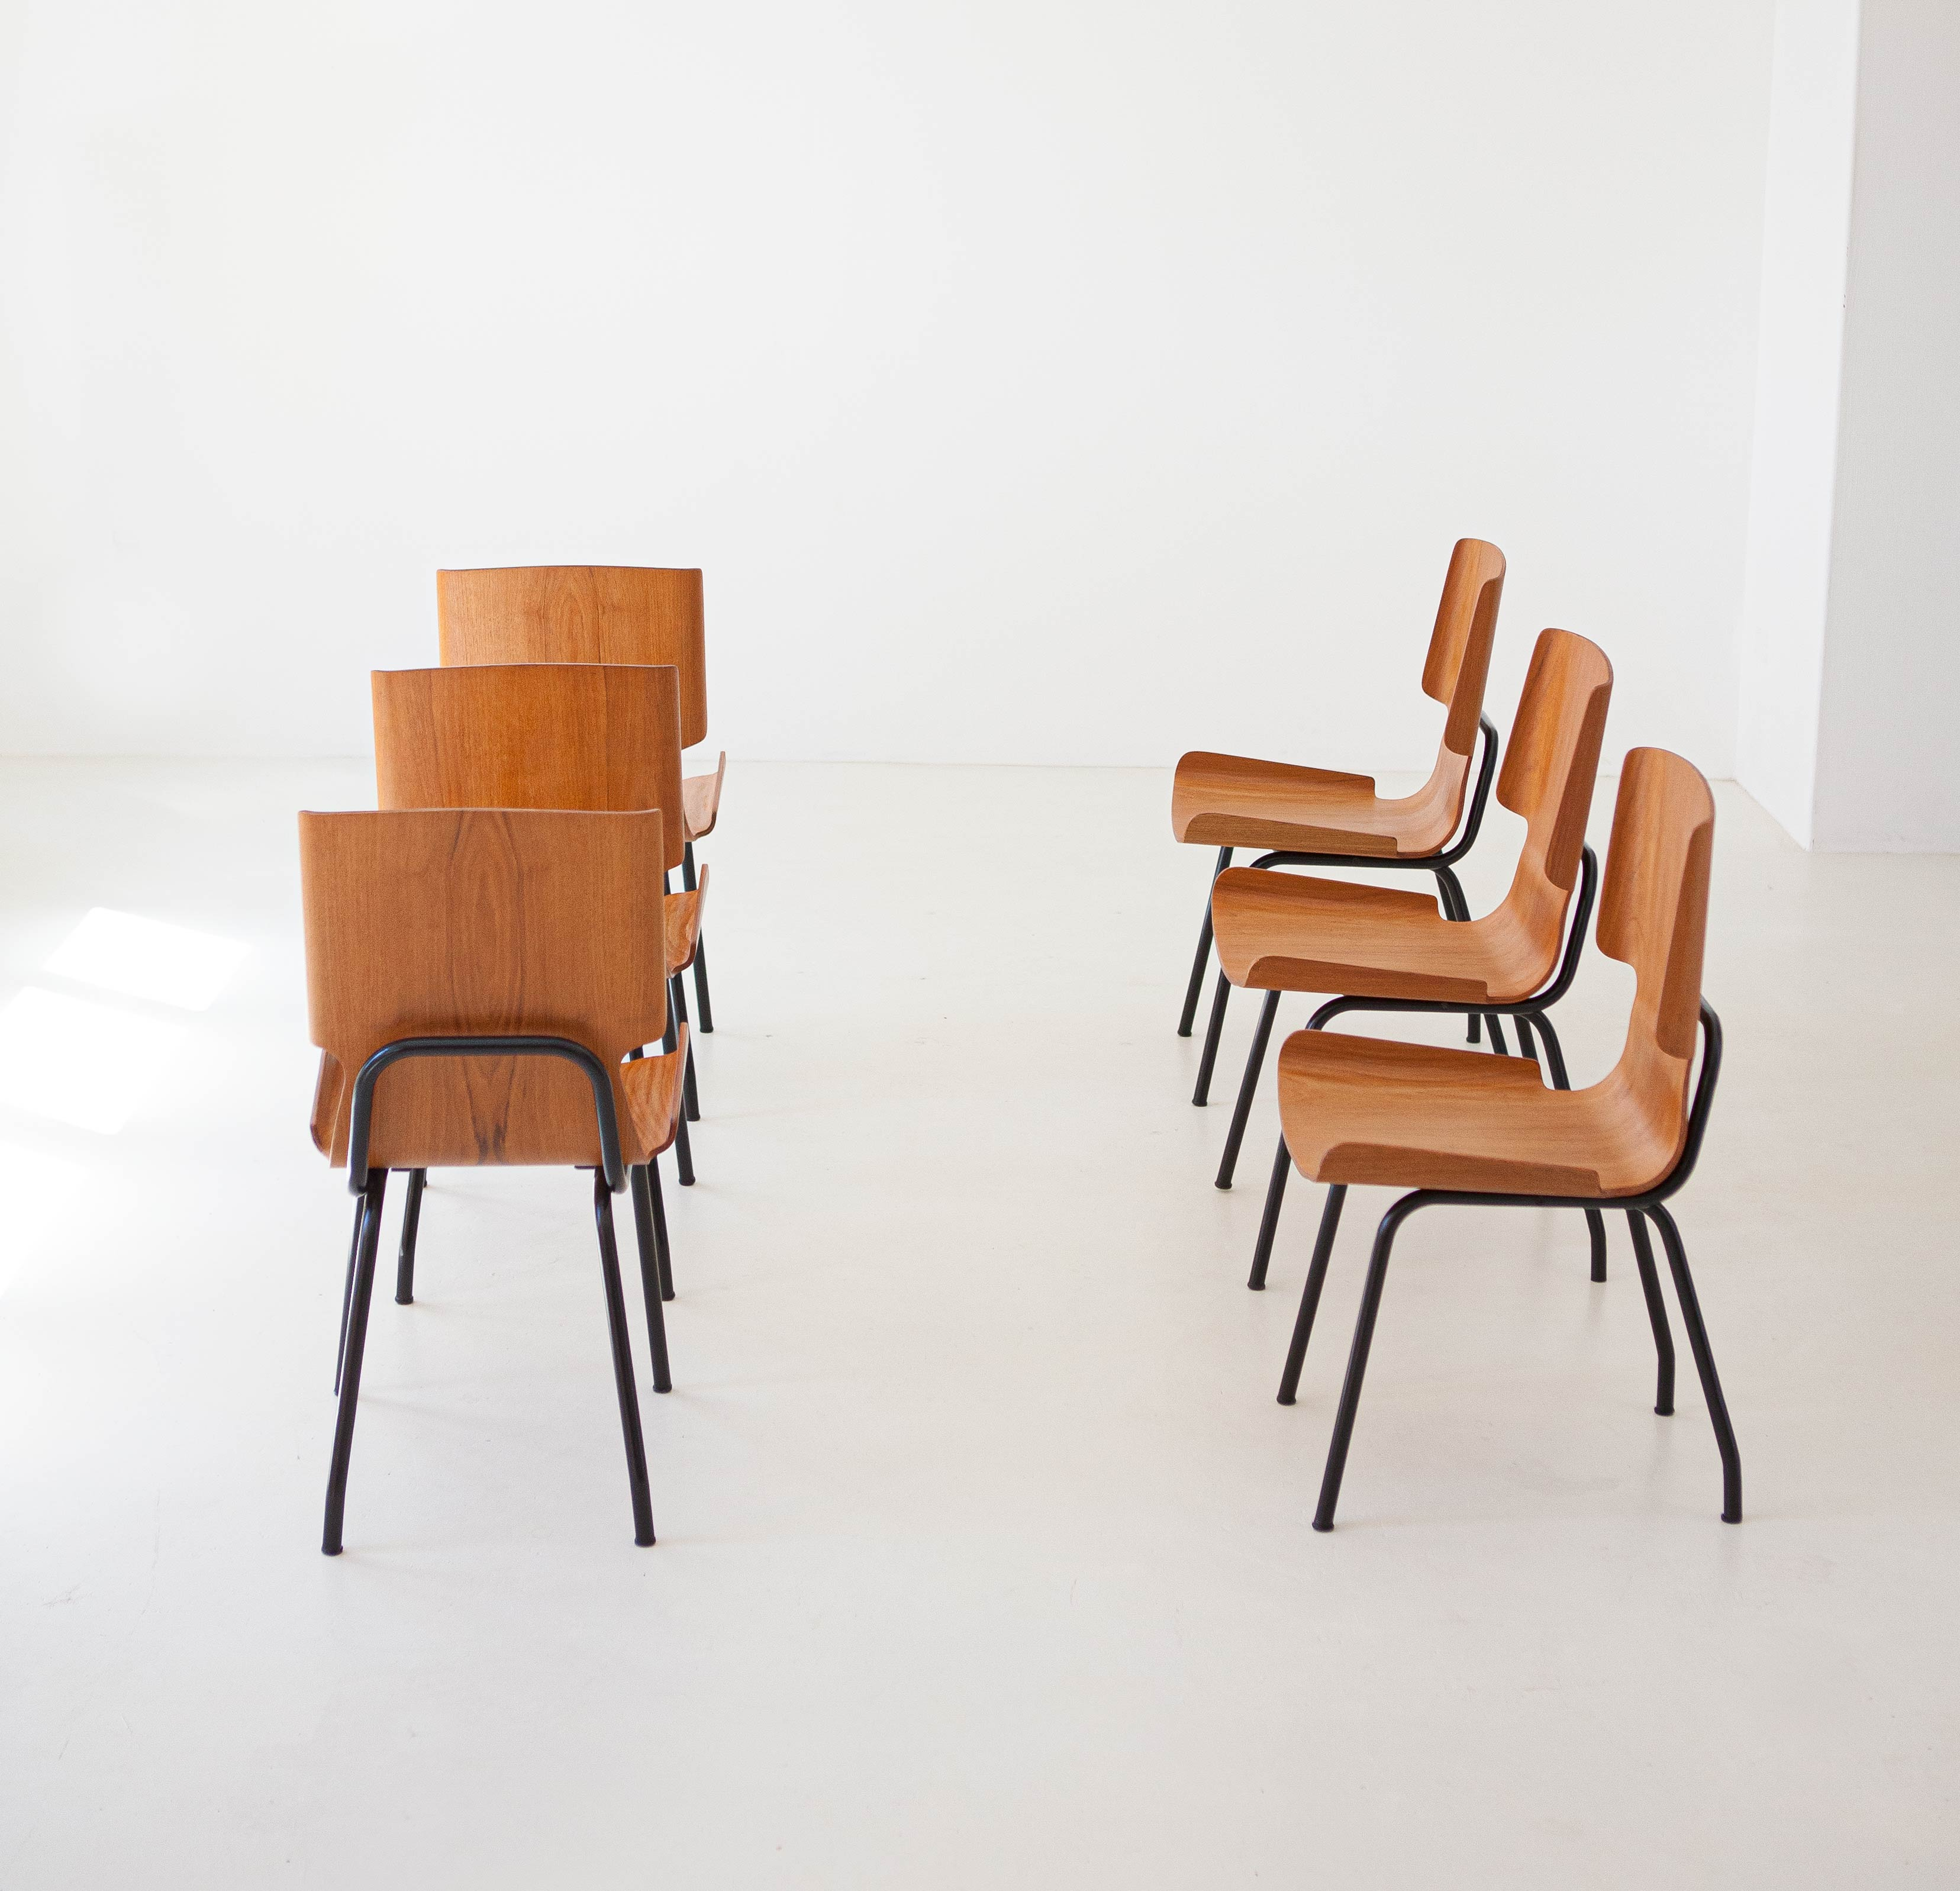 1950s-set-of-six-curved-teak-chairs-by-carlo-ratti-5-se311